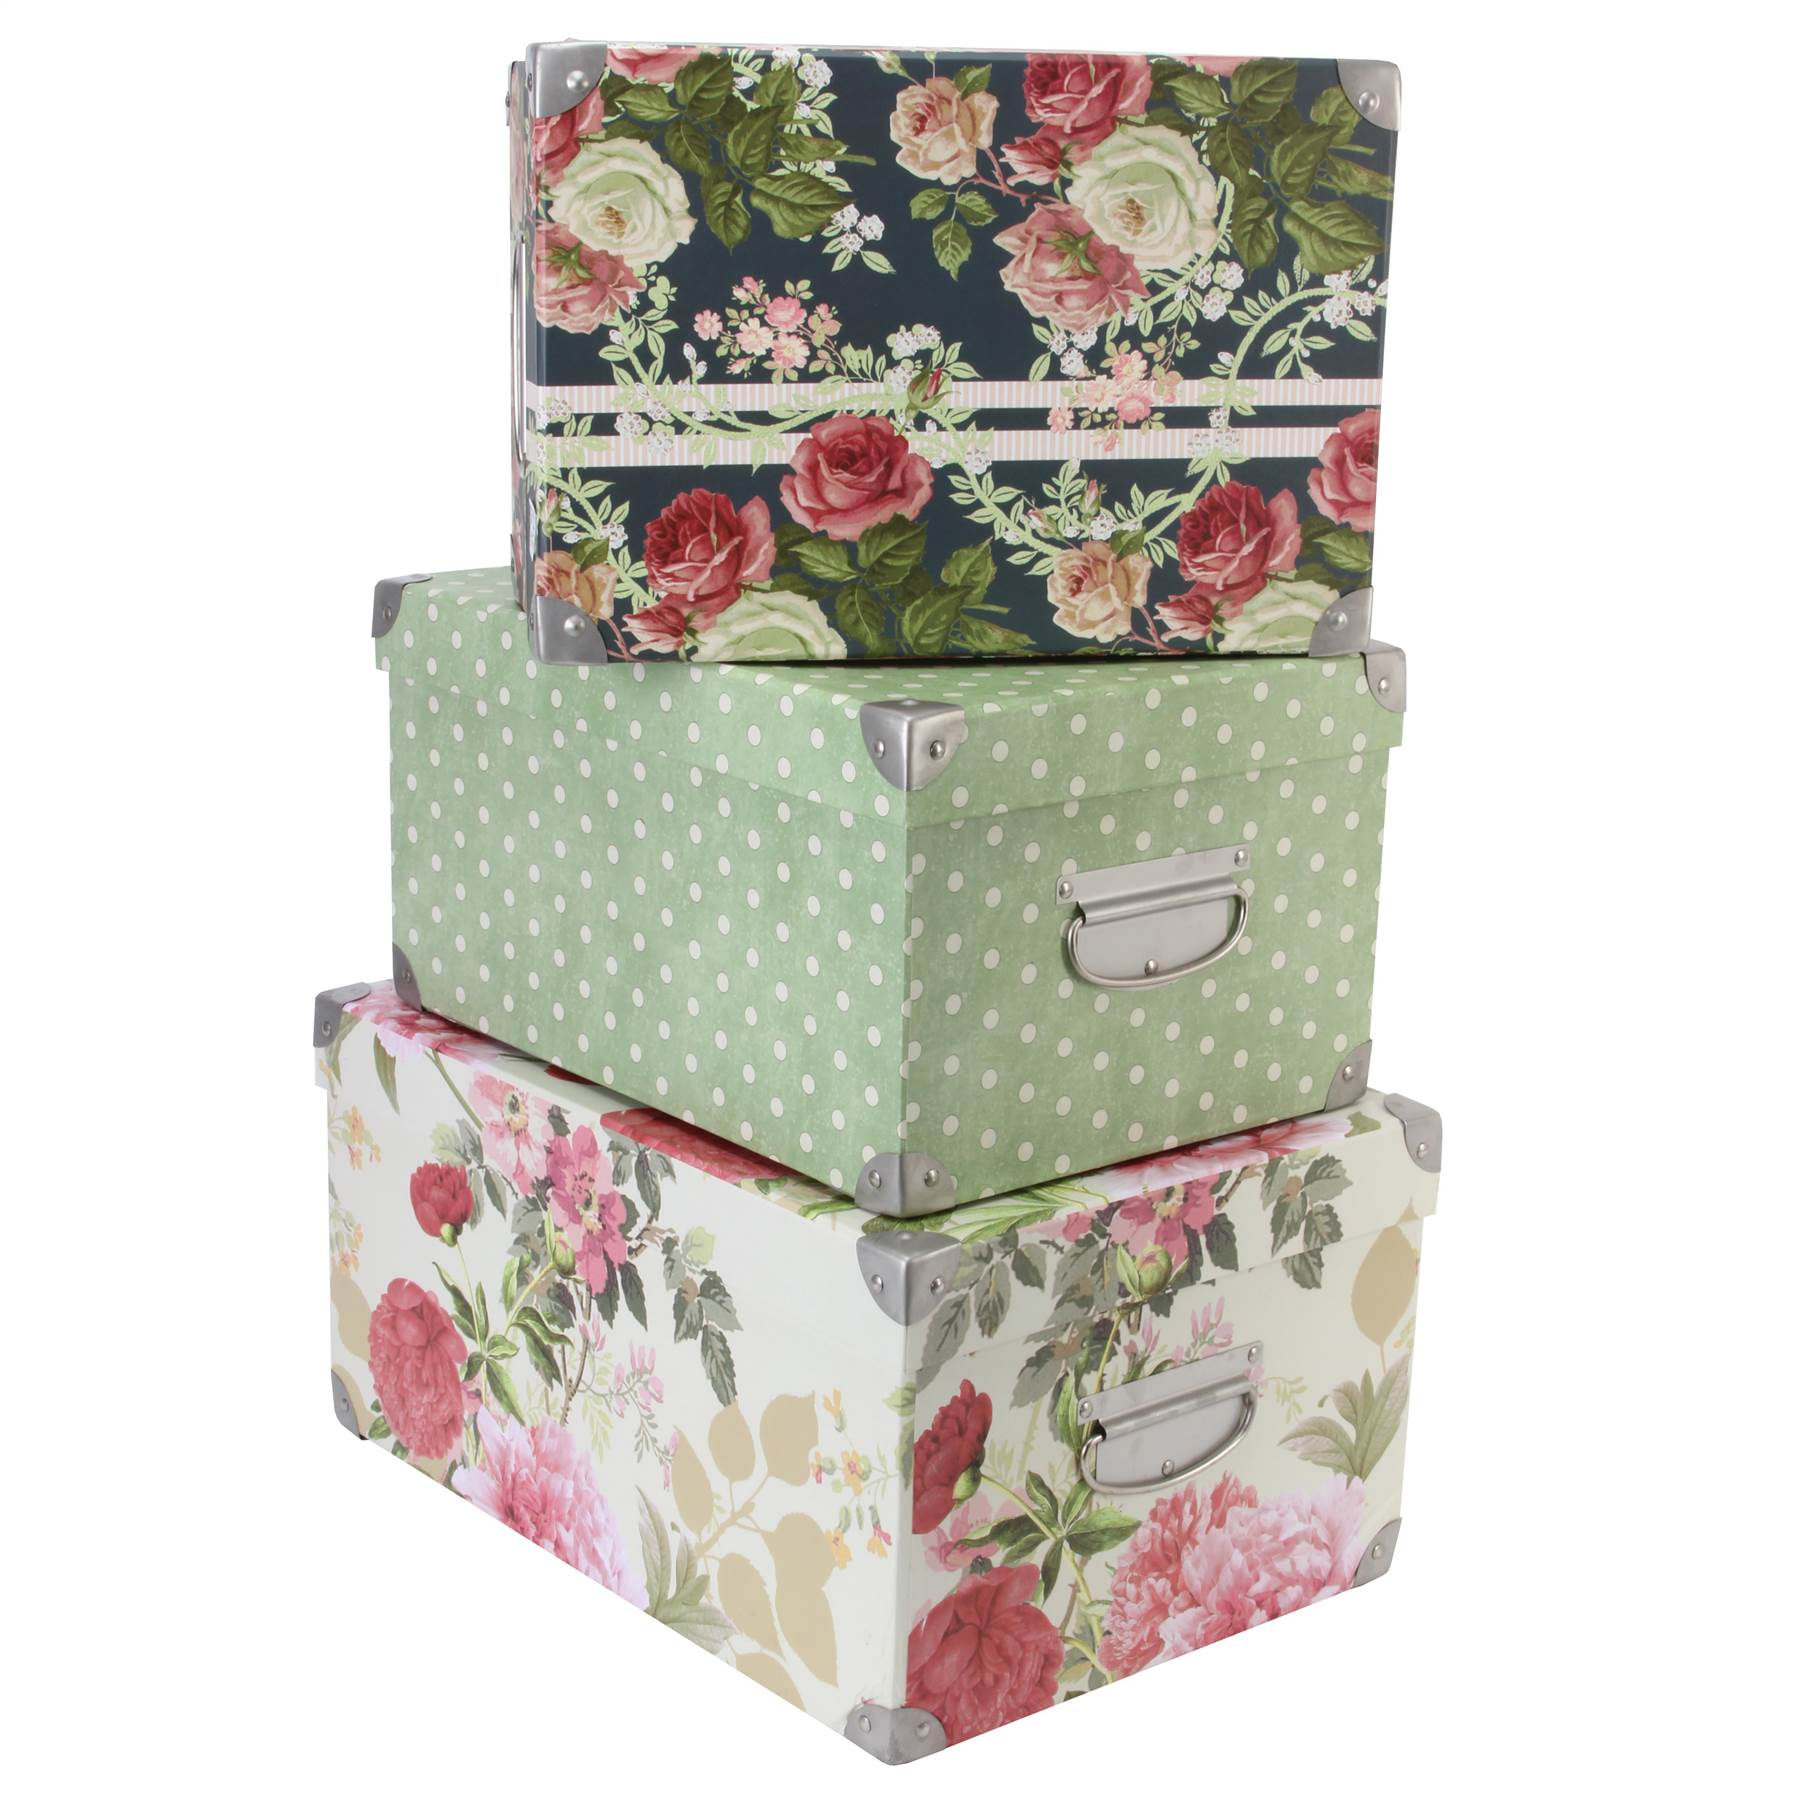 Tri coastal design set of 3 nesting storage box steamer trunks home d cor ebay - Home decorated set ...